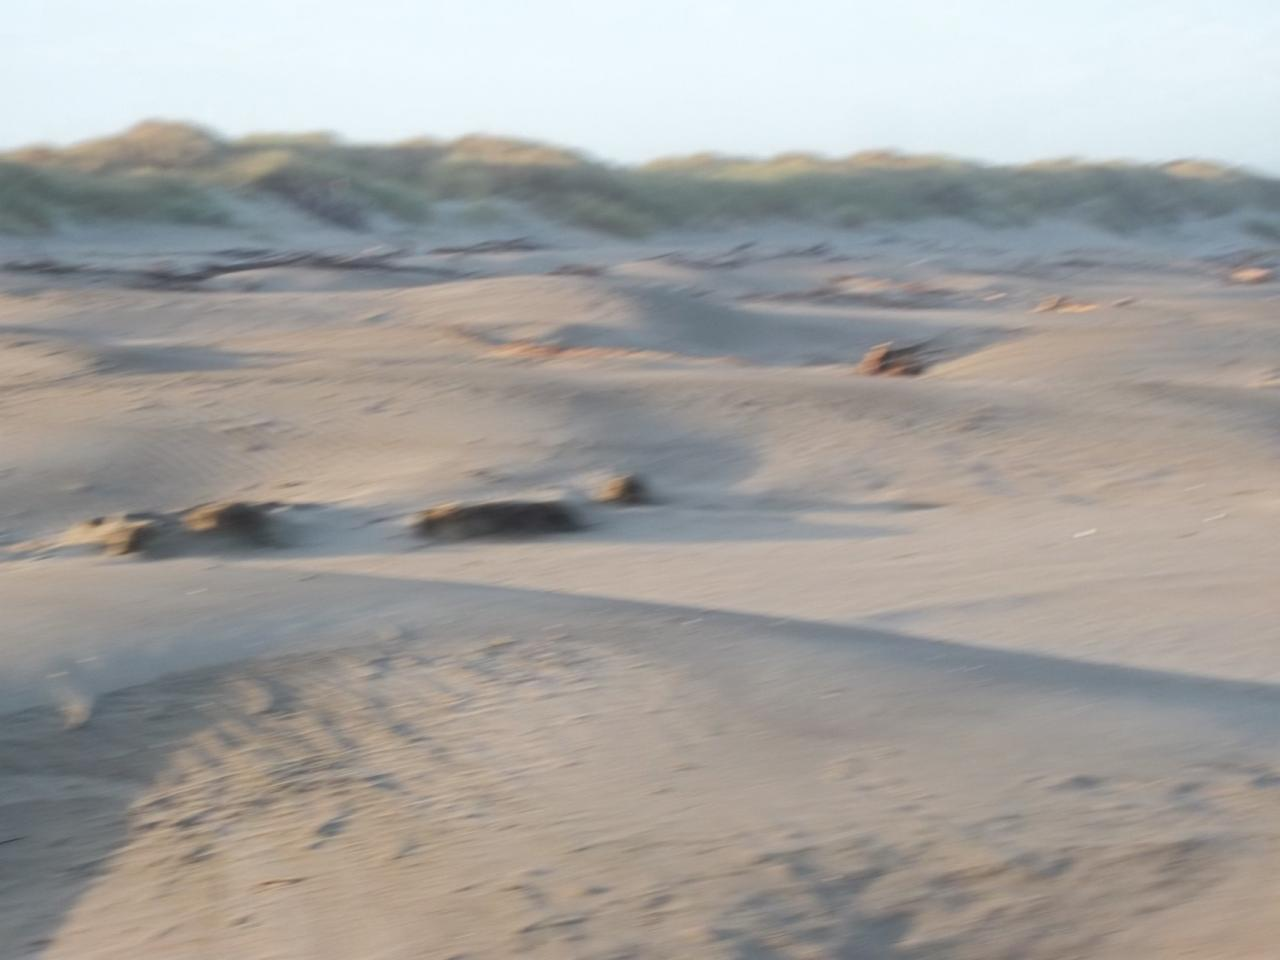 Fierce northerly winds leave sculptured mounds along this stretch of beach just north of the Coquille River.